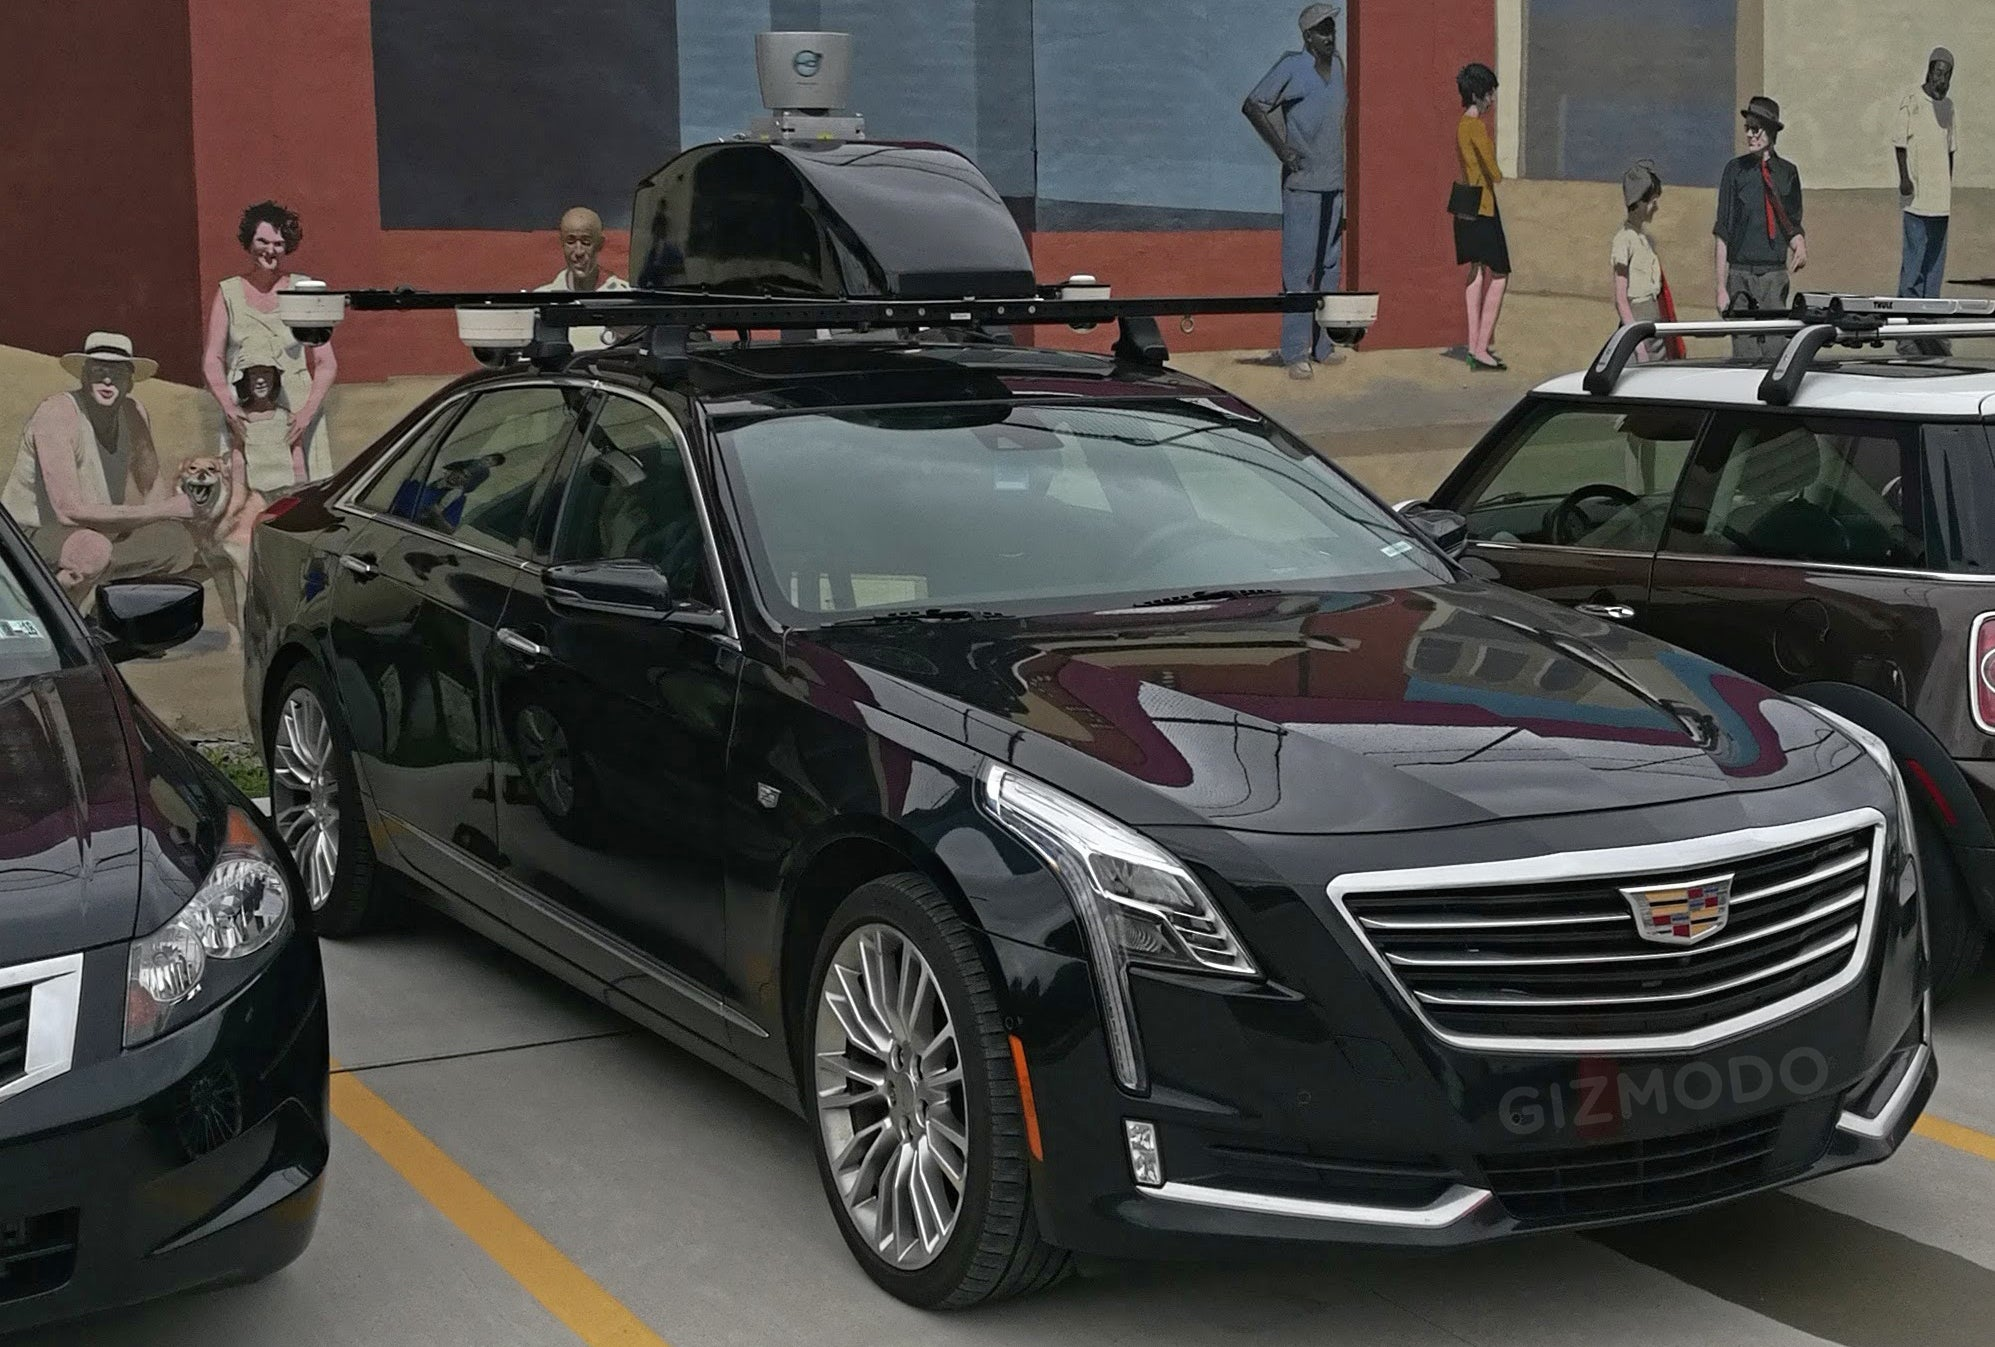 Who Does This Self-Driving Cadillac CT6 Belong To?